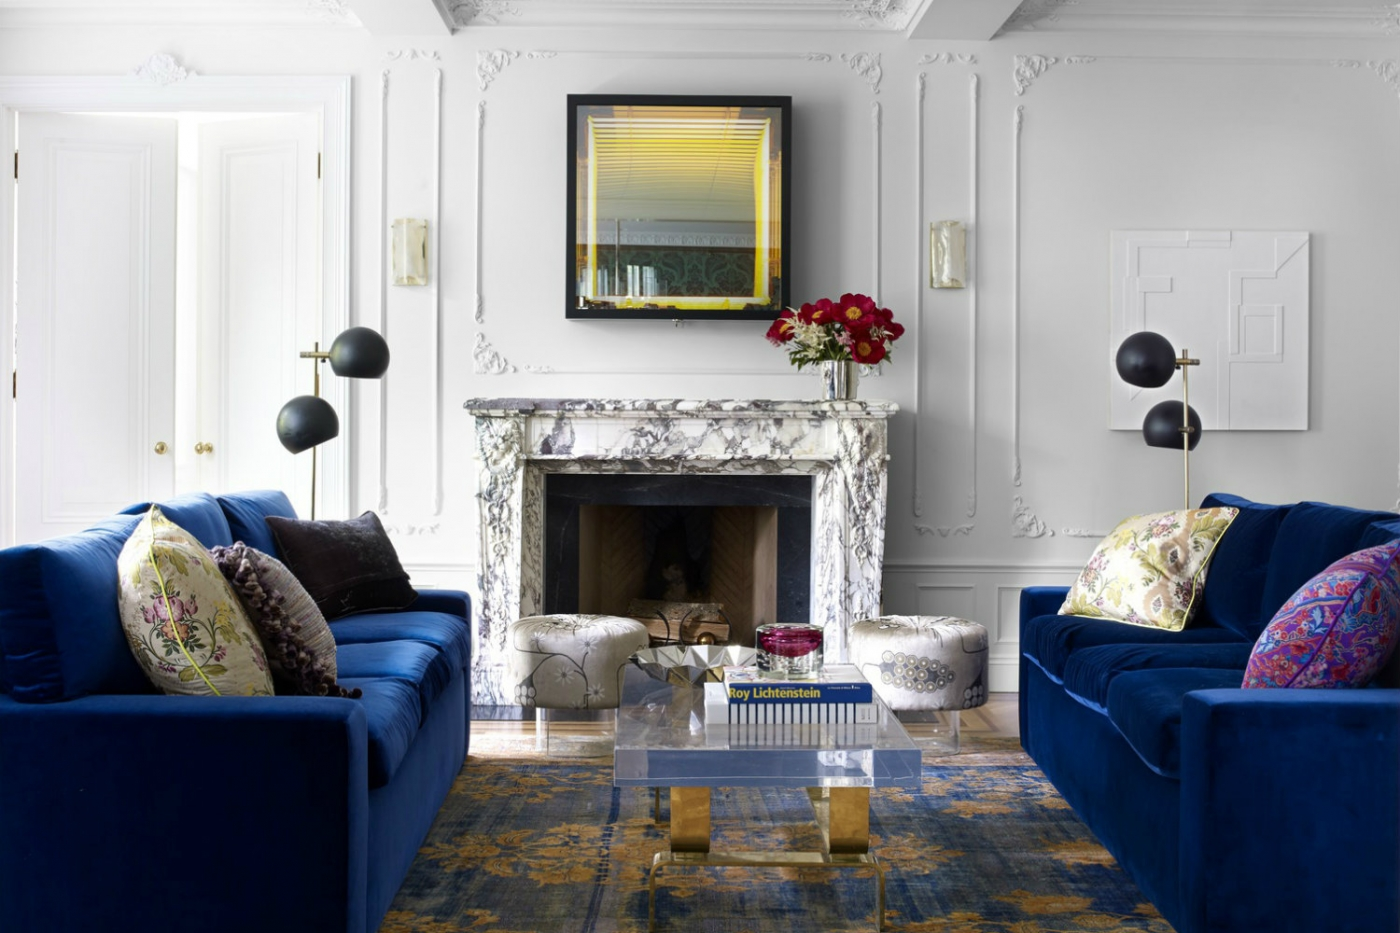 blue living room Top 11 Blue Living Room Designs by Best Interior Designers featured 1 1400x933